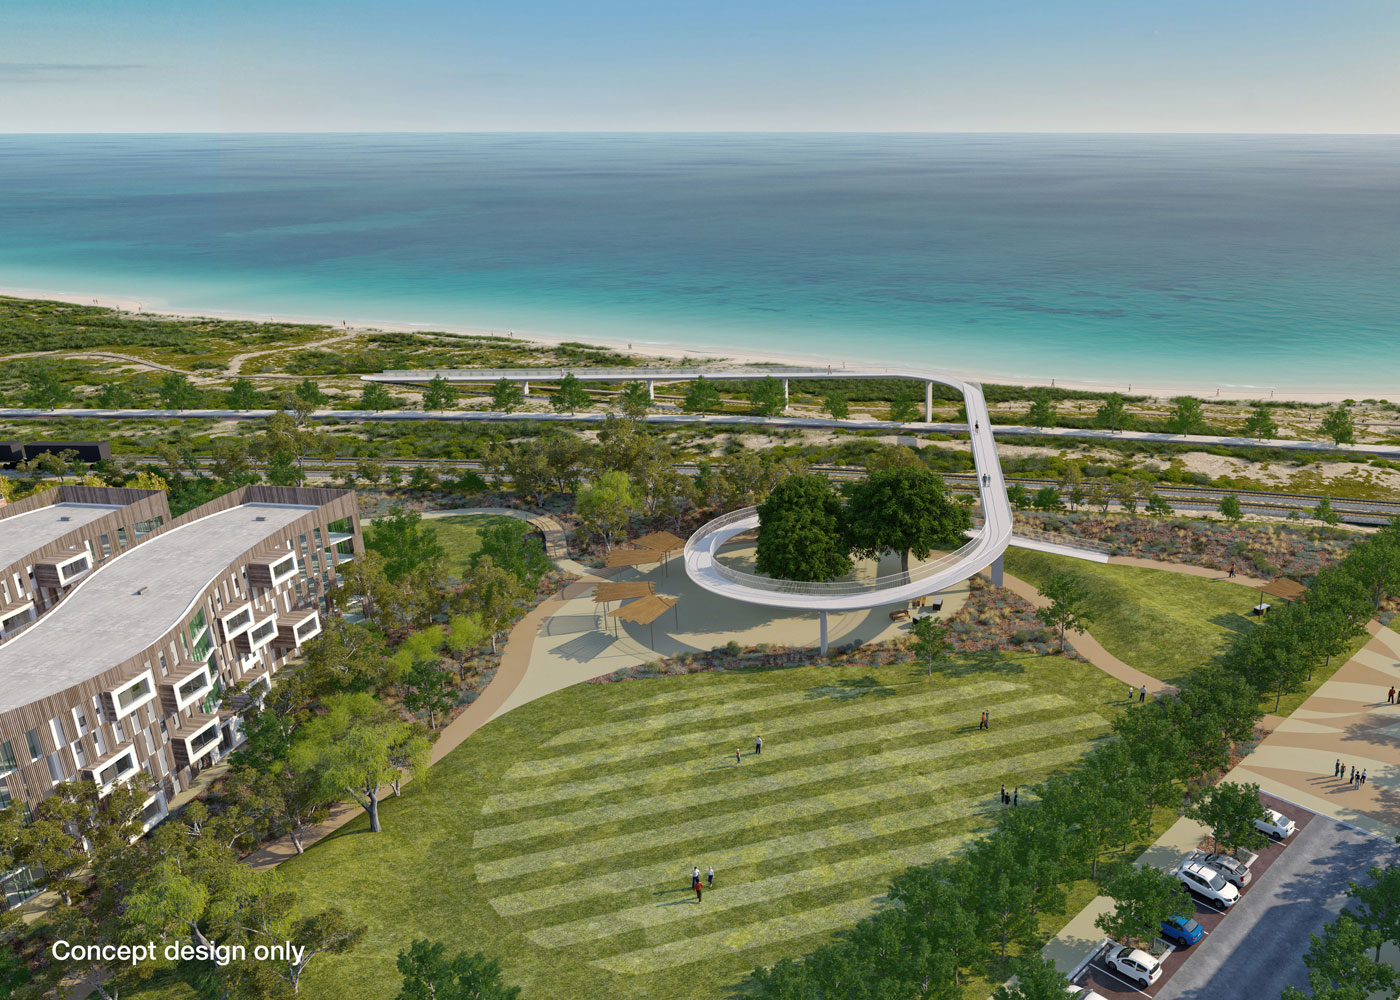 Pedestrian Bridge Design - Cockburn Coast